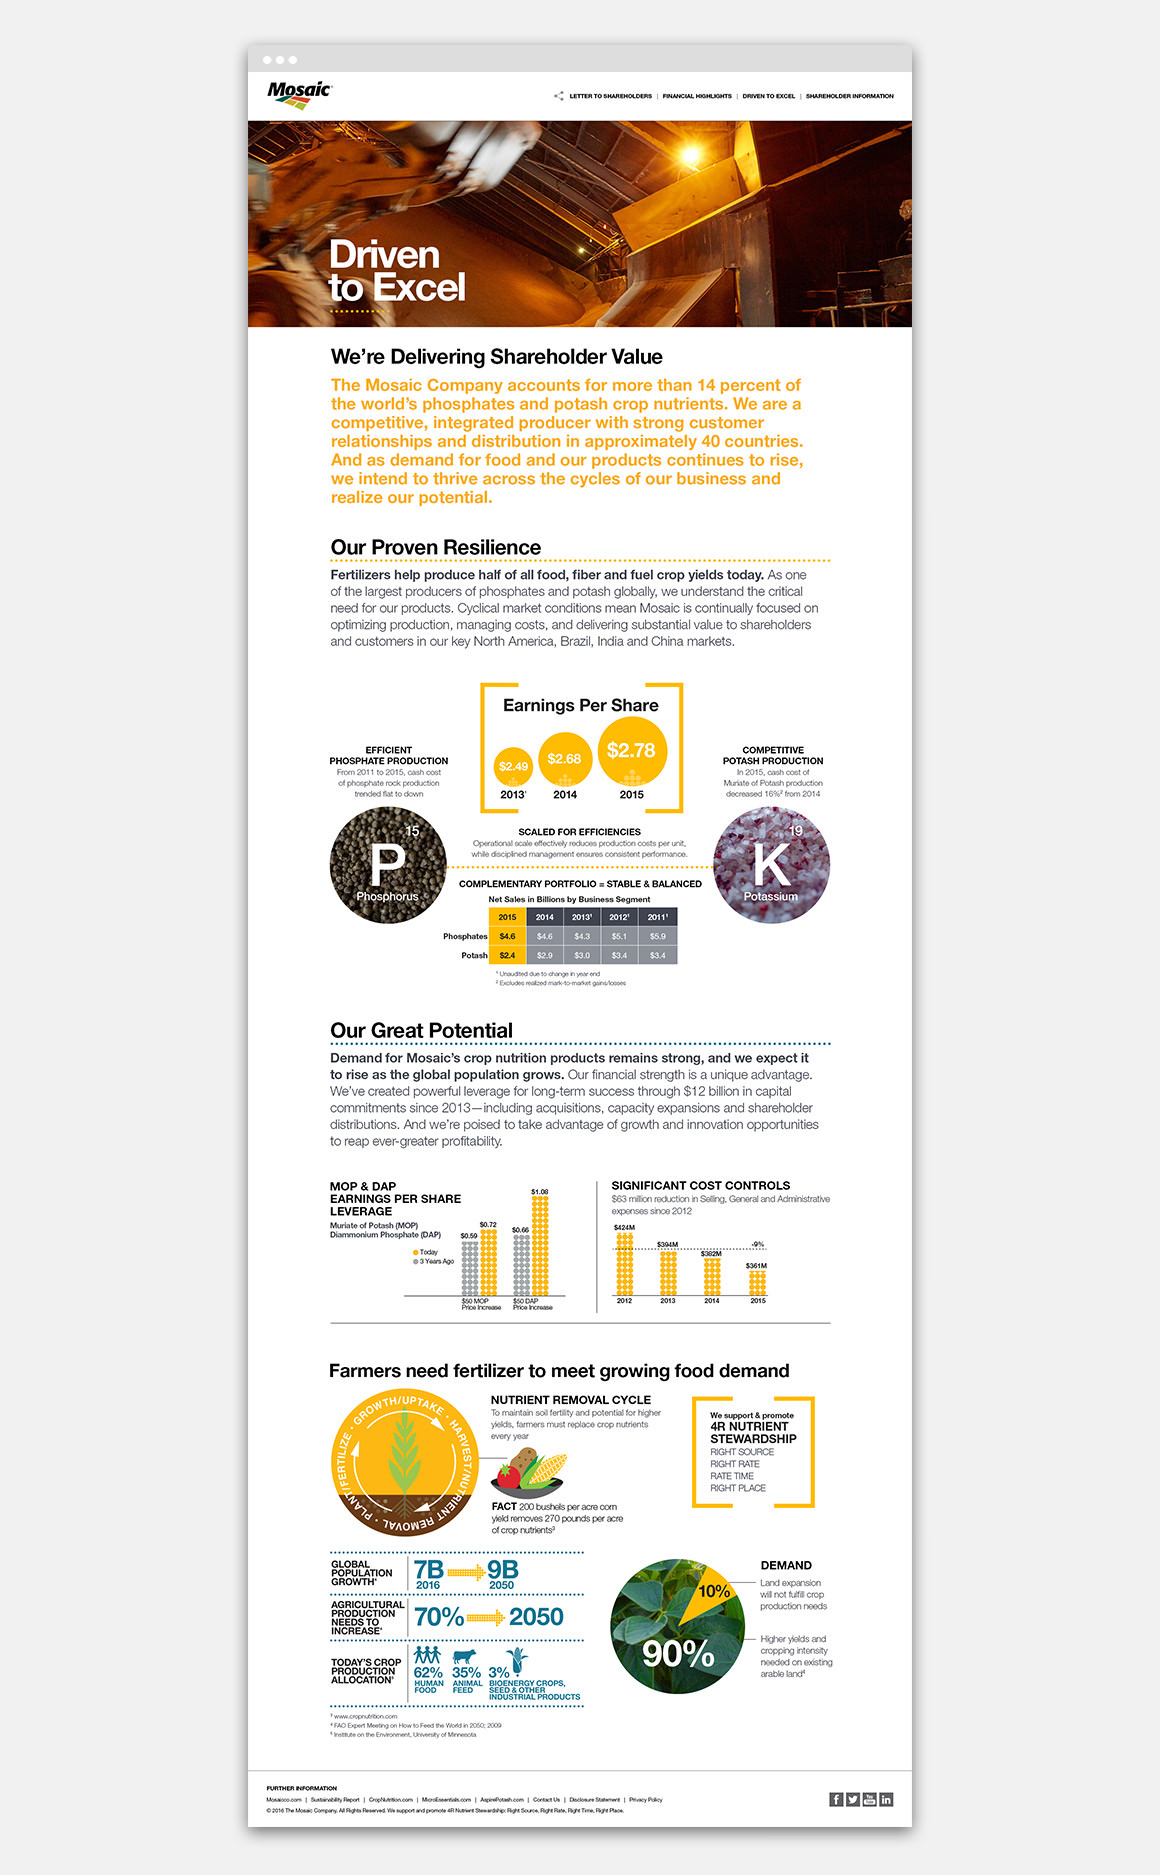 For your information . Online and in print, infographics show Mosaic's resilience, potential and its part in helping to meet growing demand for food.